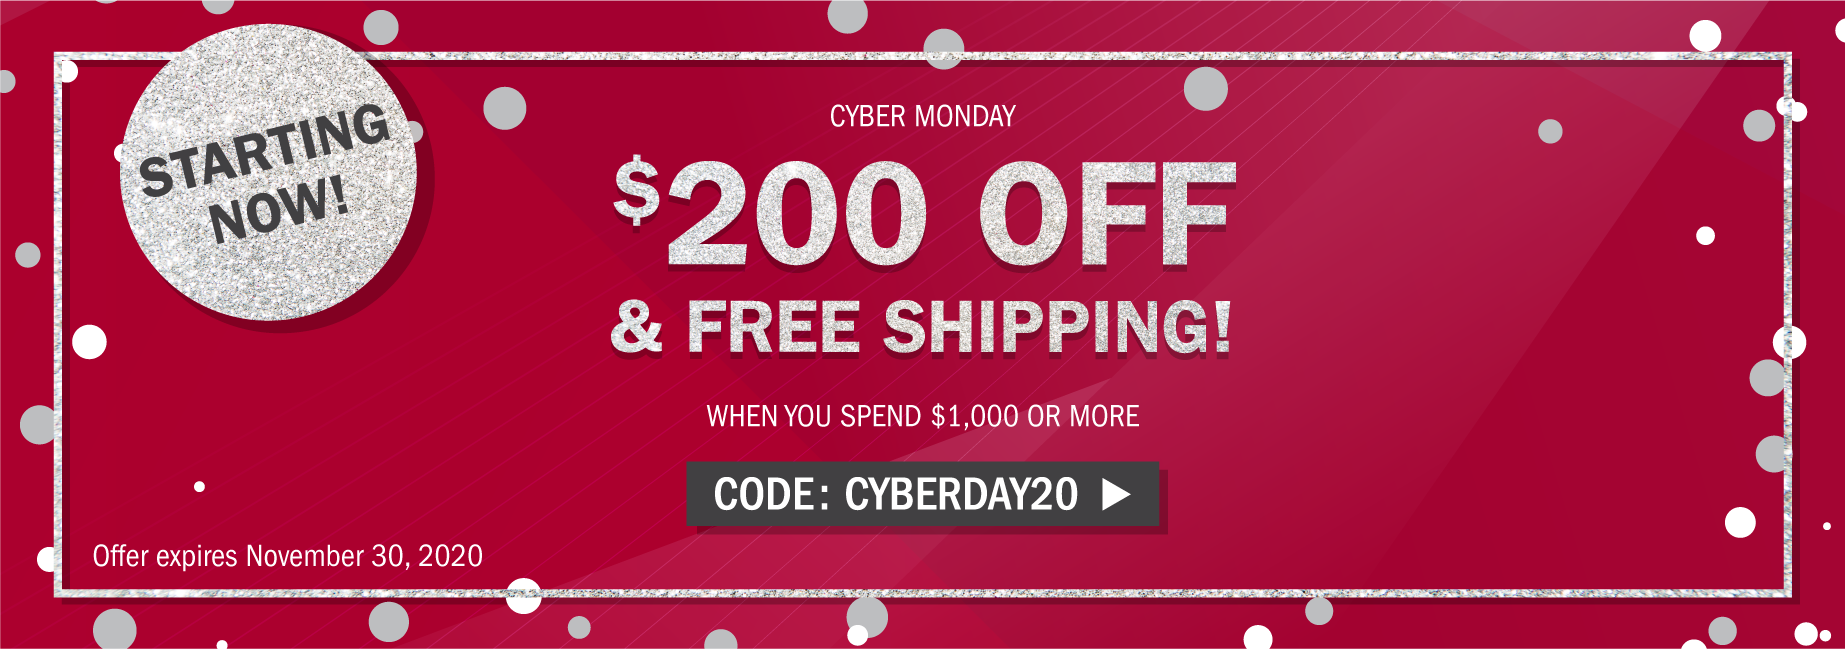 Cyber Monday: Save $200 on your order of $1,000+